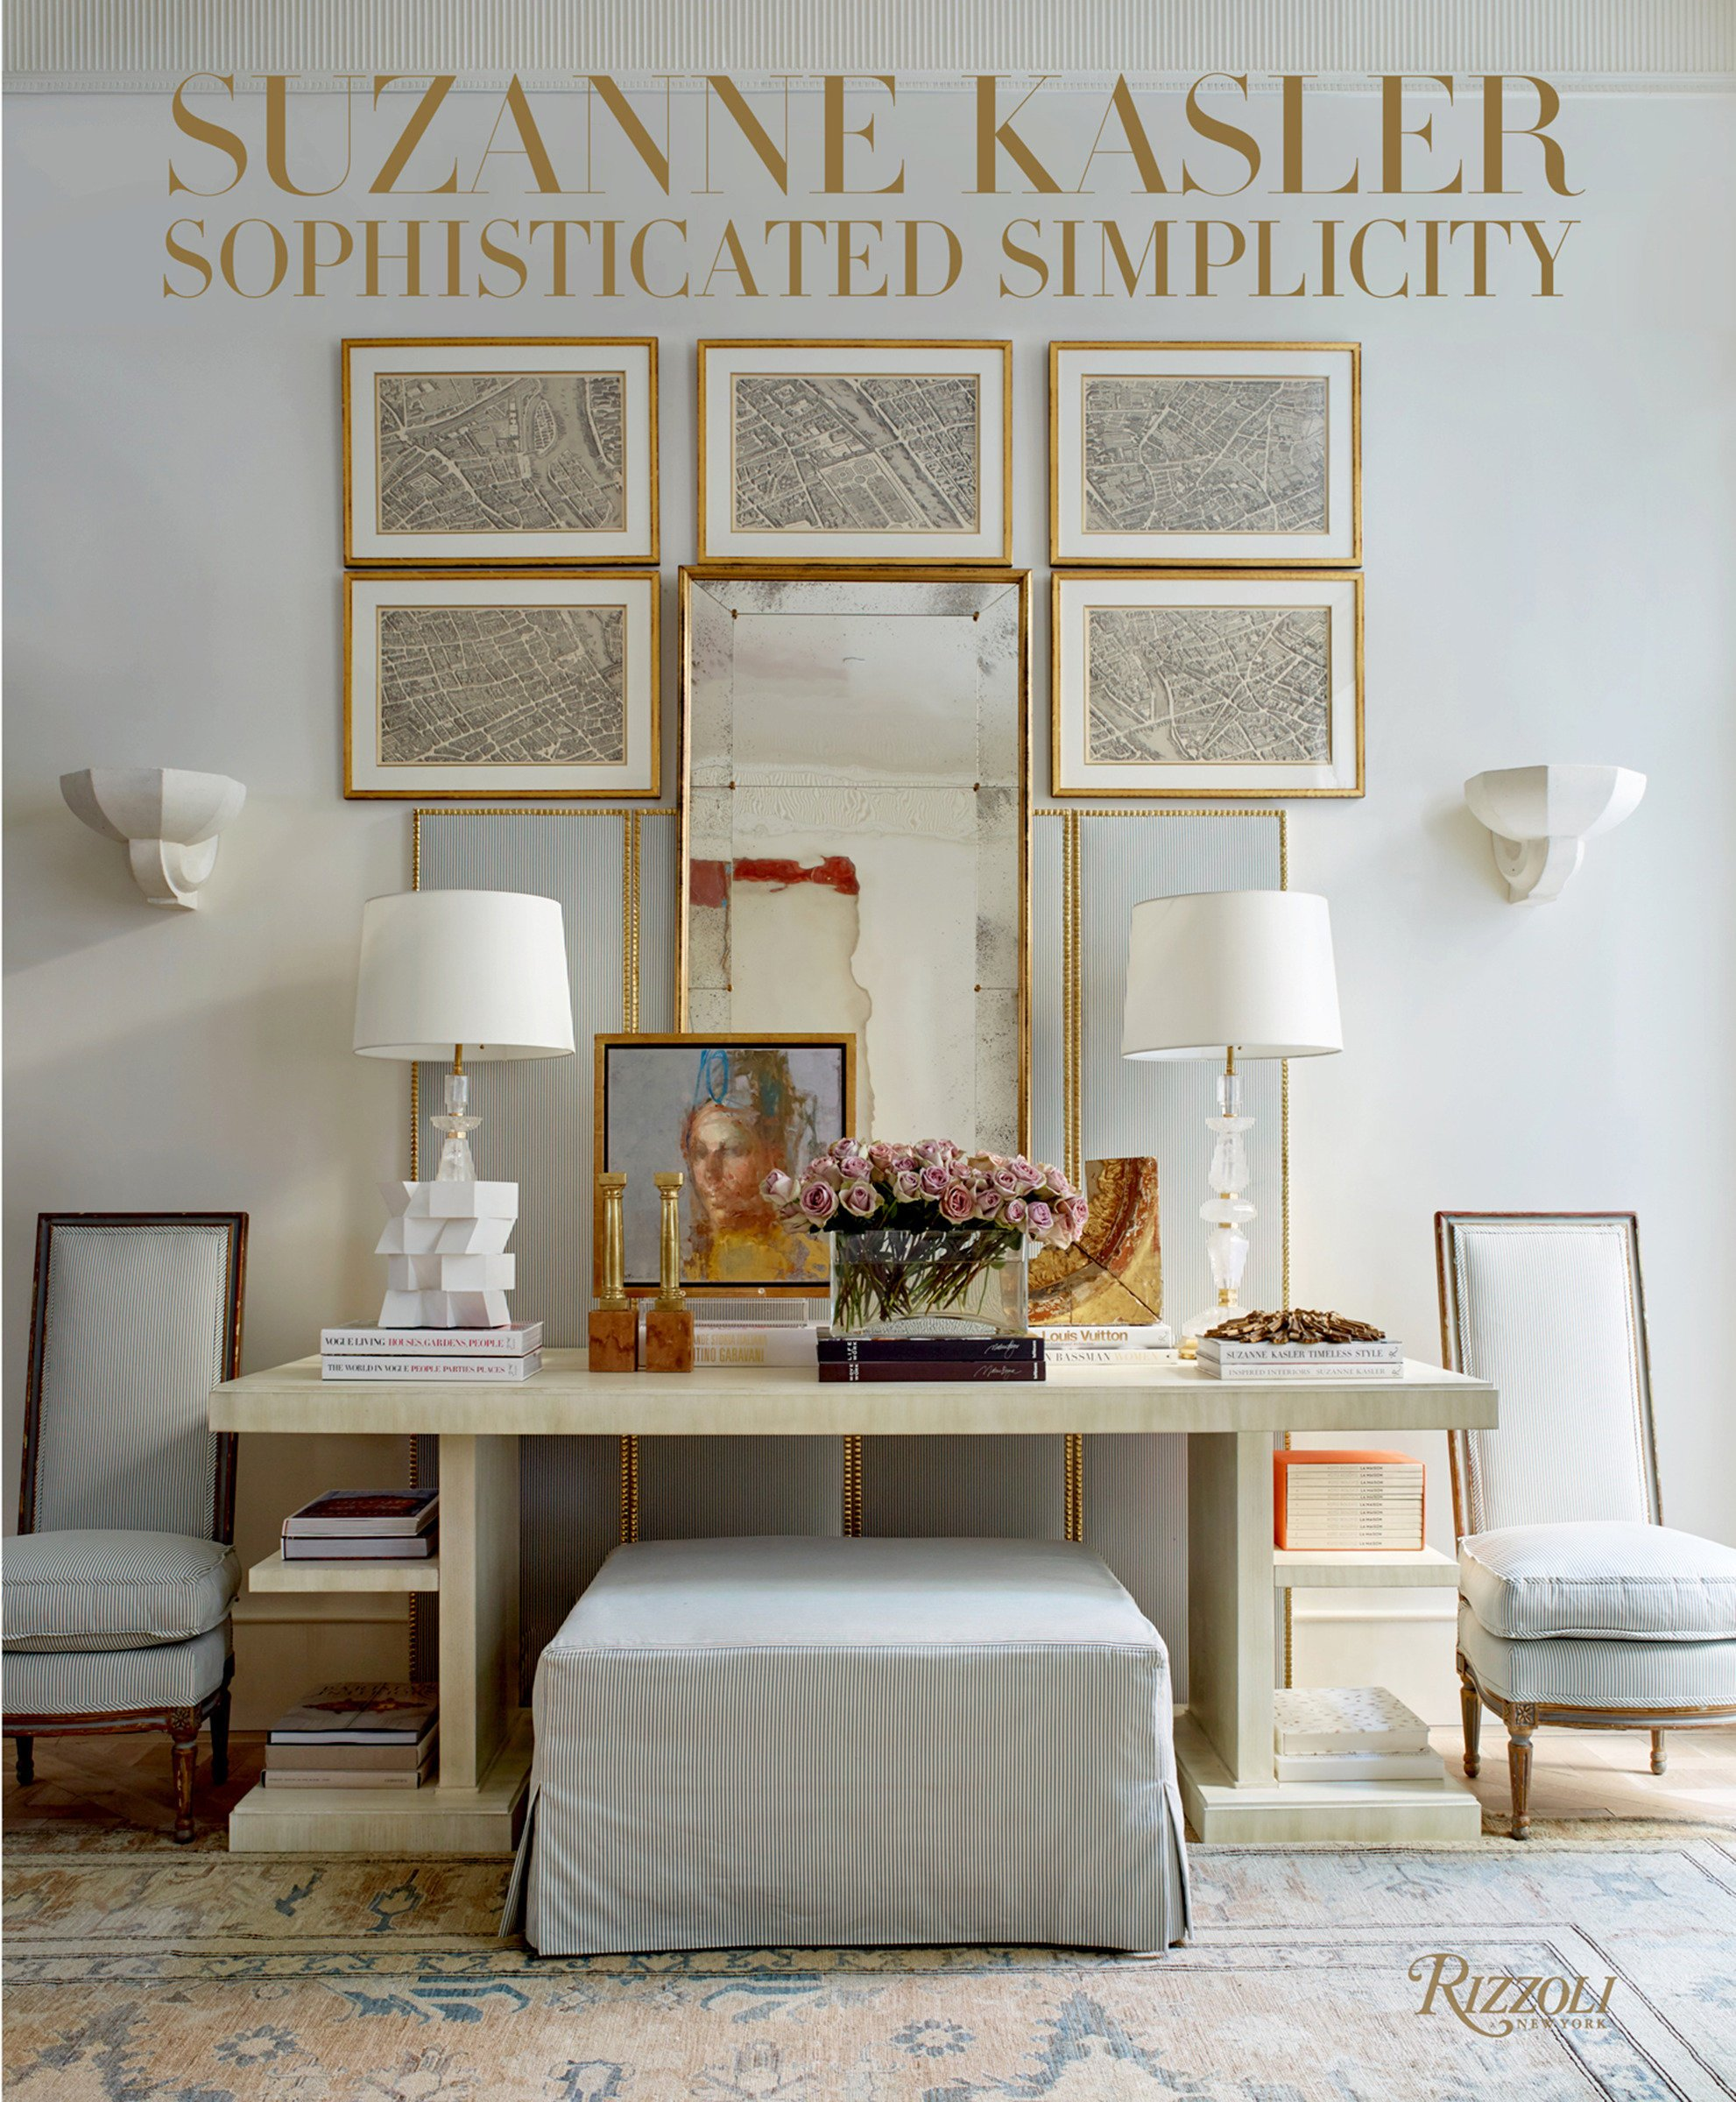 Sophisticated Simplicity by Suzanne Kasler book cover. #bestseller #interiordesignbooks #decoratingguide